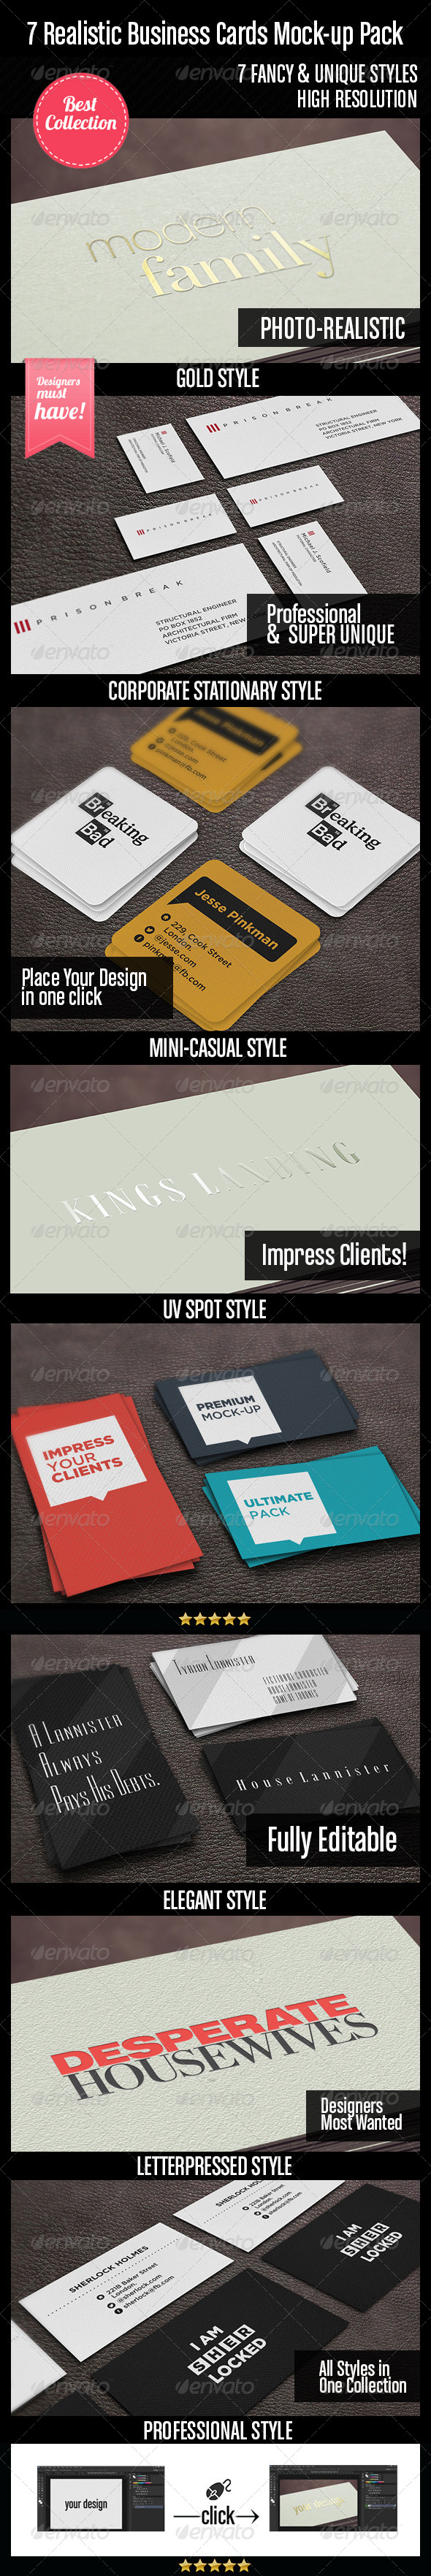 7 Realistic Business Cards Mock-up Pack - Business Cards Print